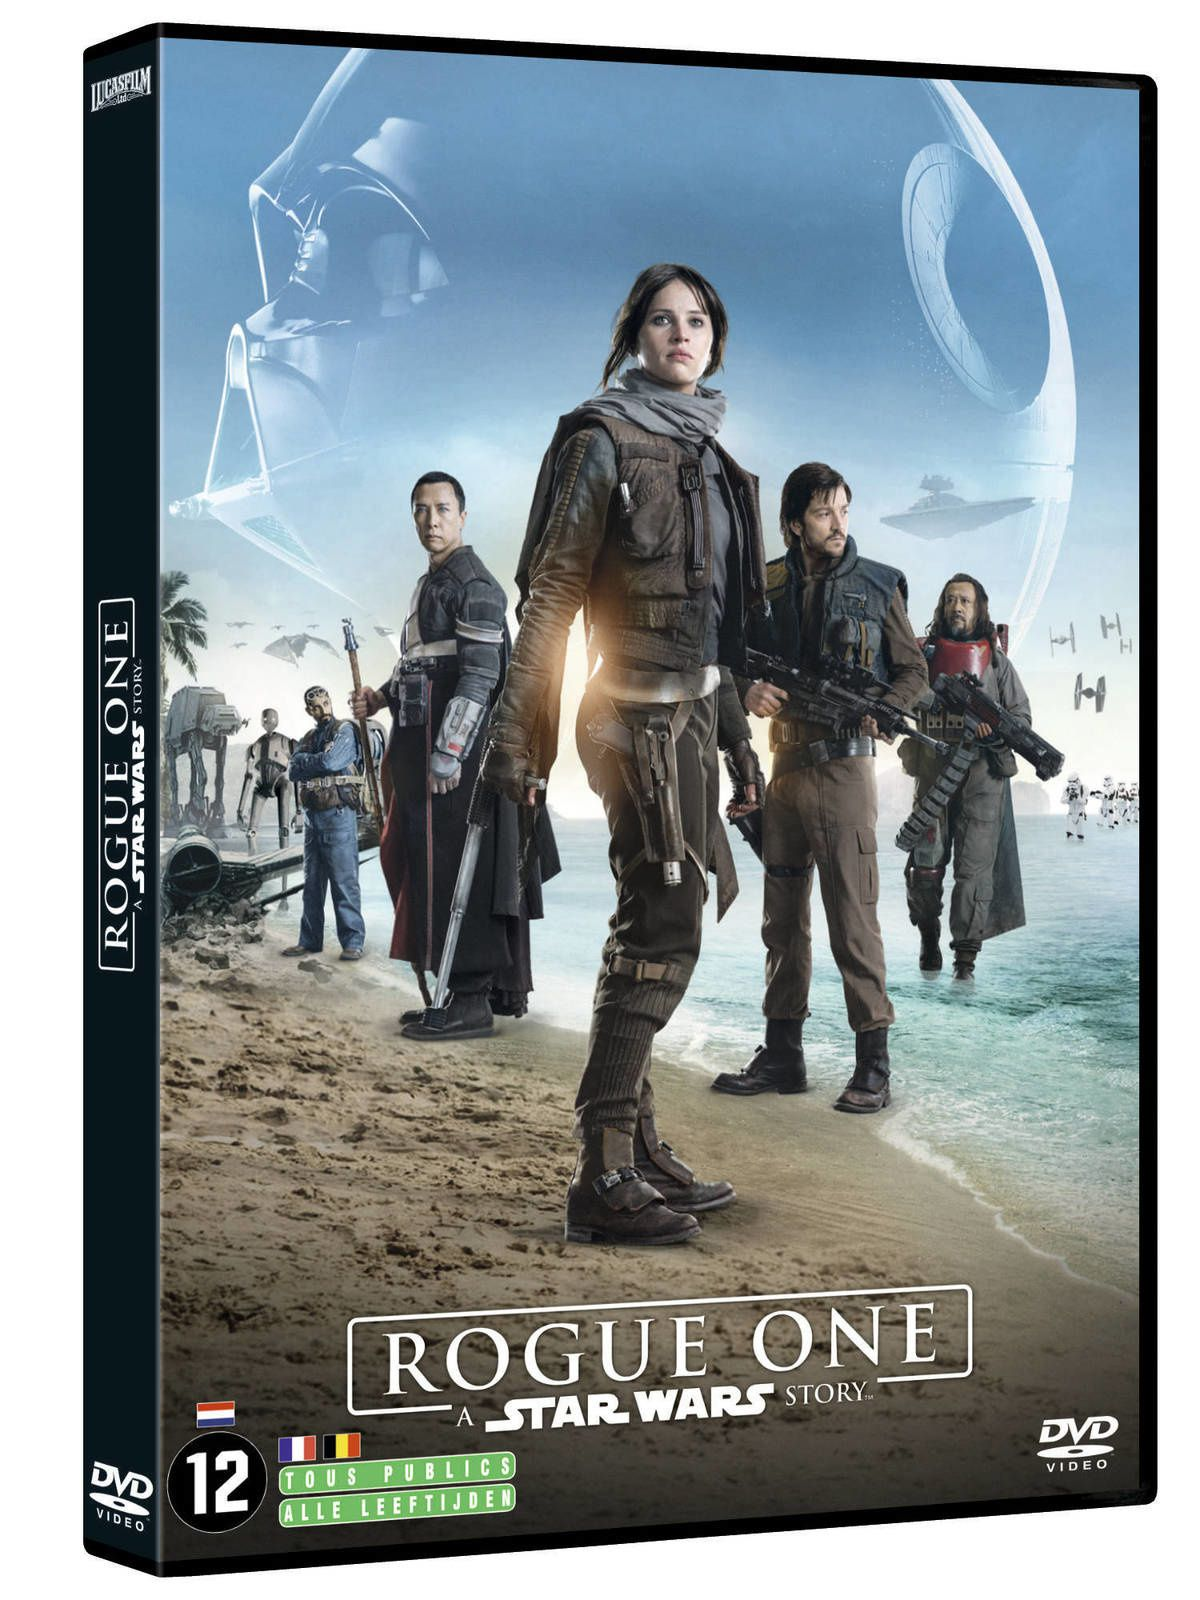 ROGUE ONE : A STAR WARS STORY le 21 avril en Blu-ray 3D, Blu-ray et DVD !